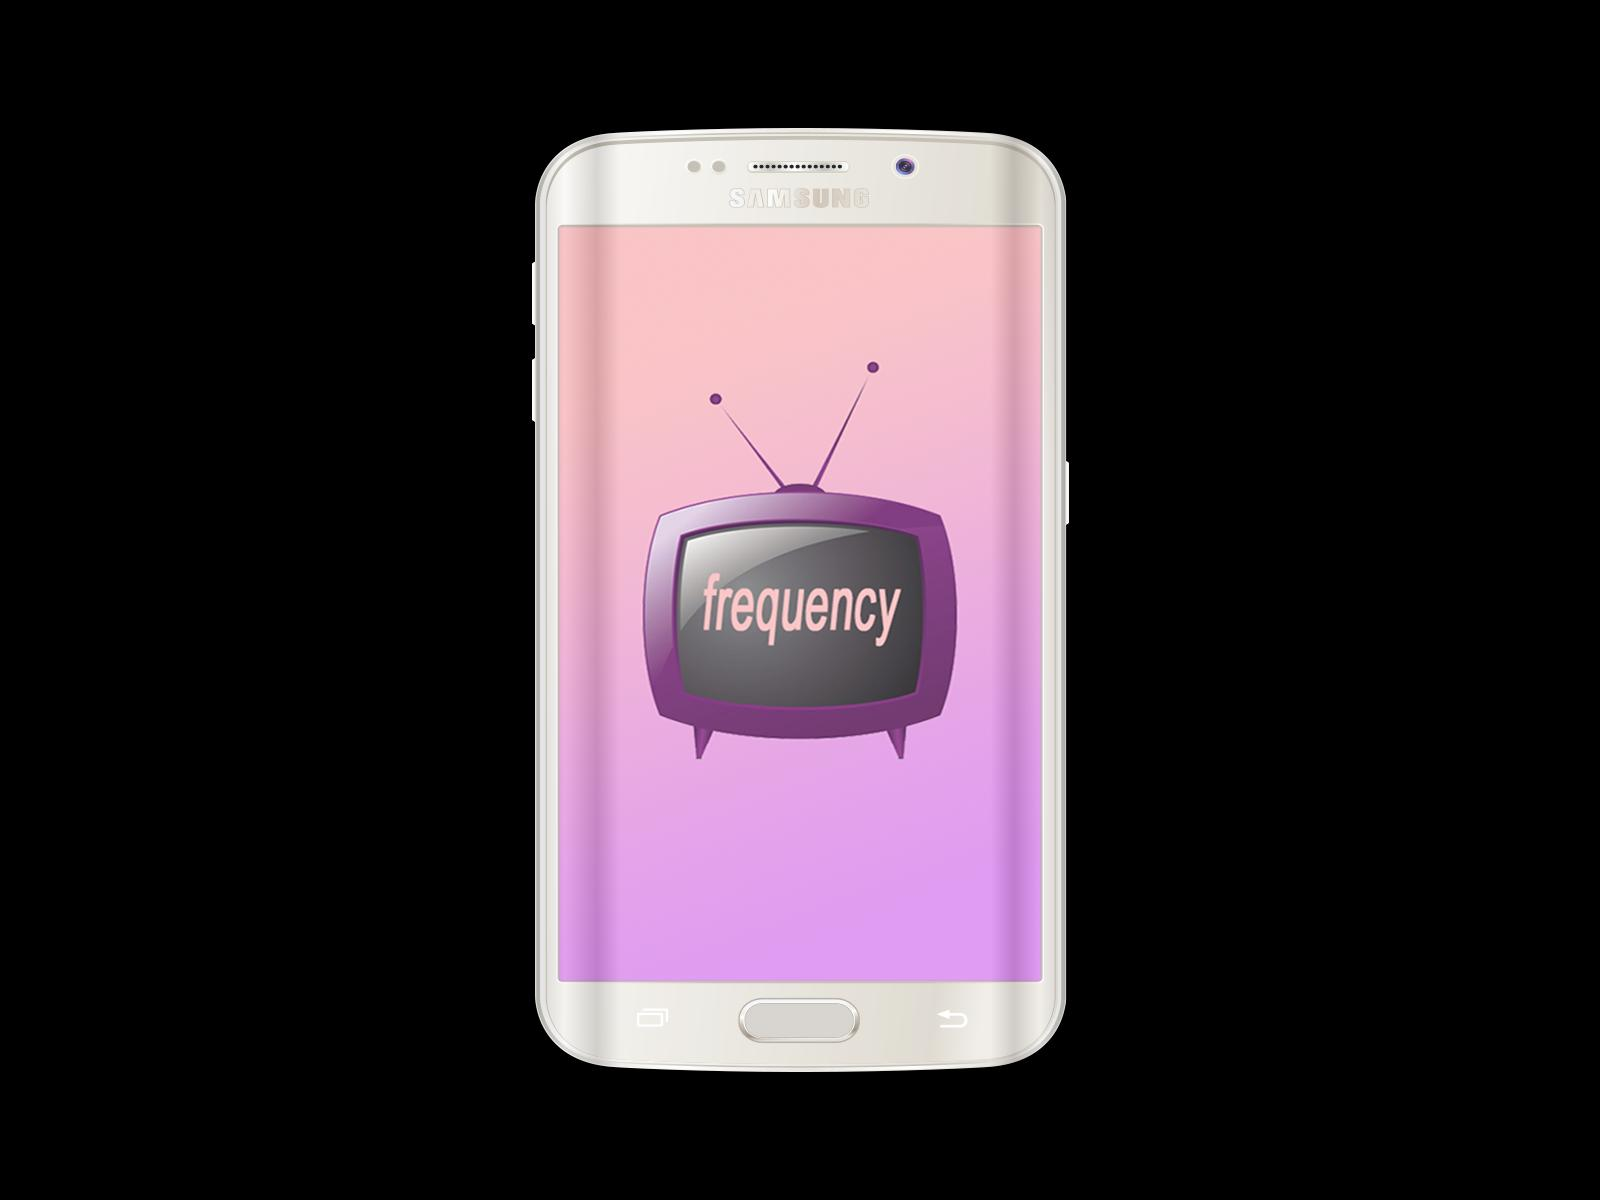 Hotbird frequency 2016 for Android - APK Download